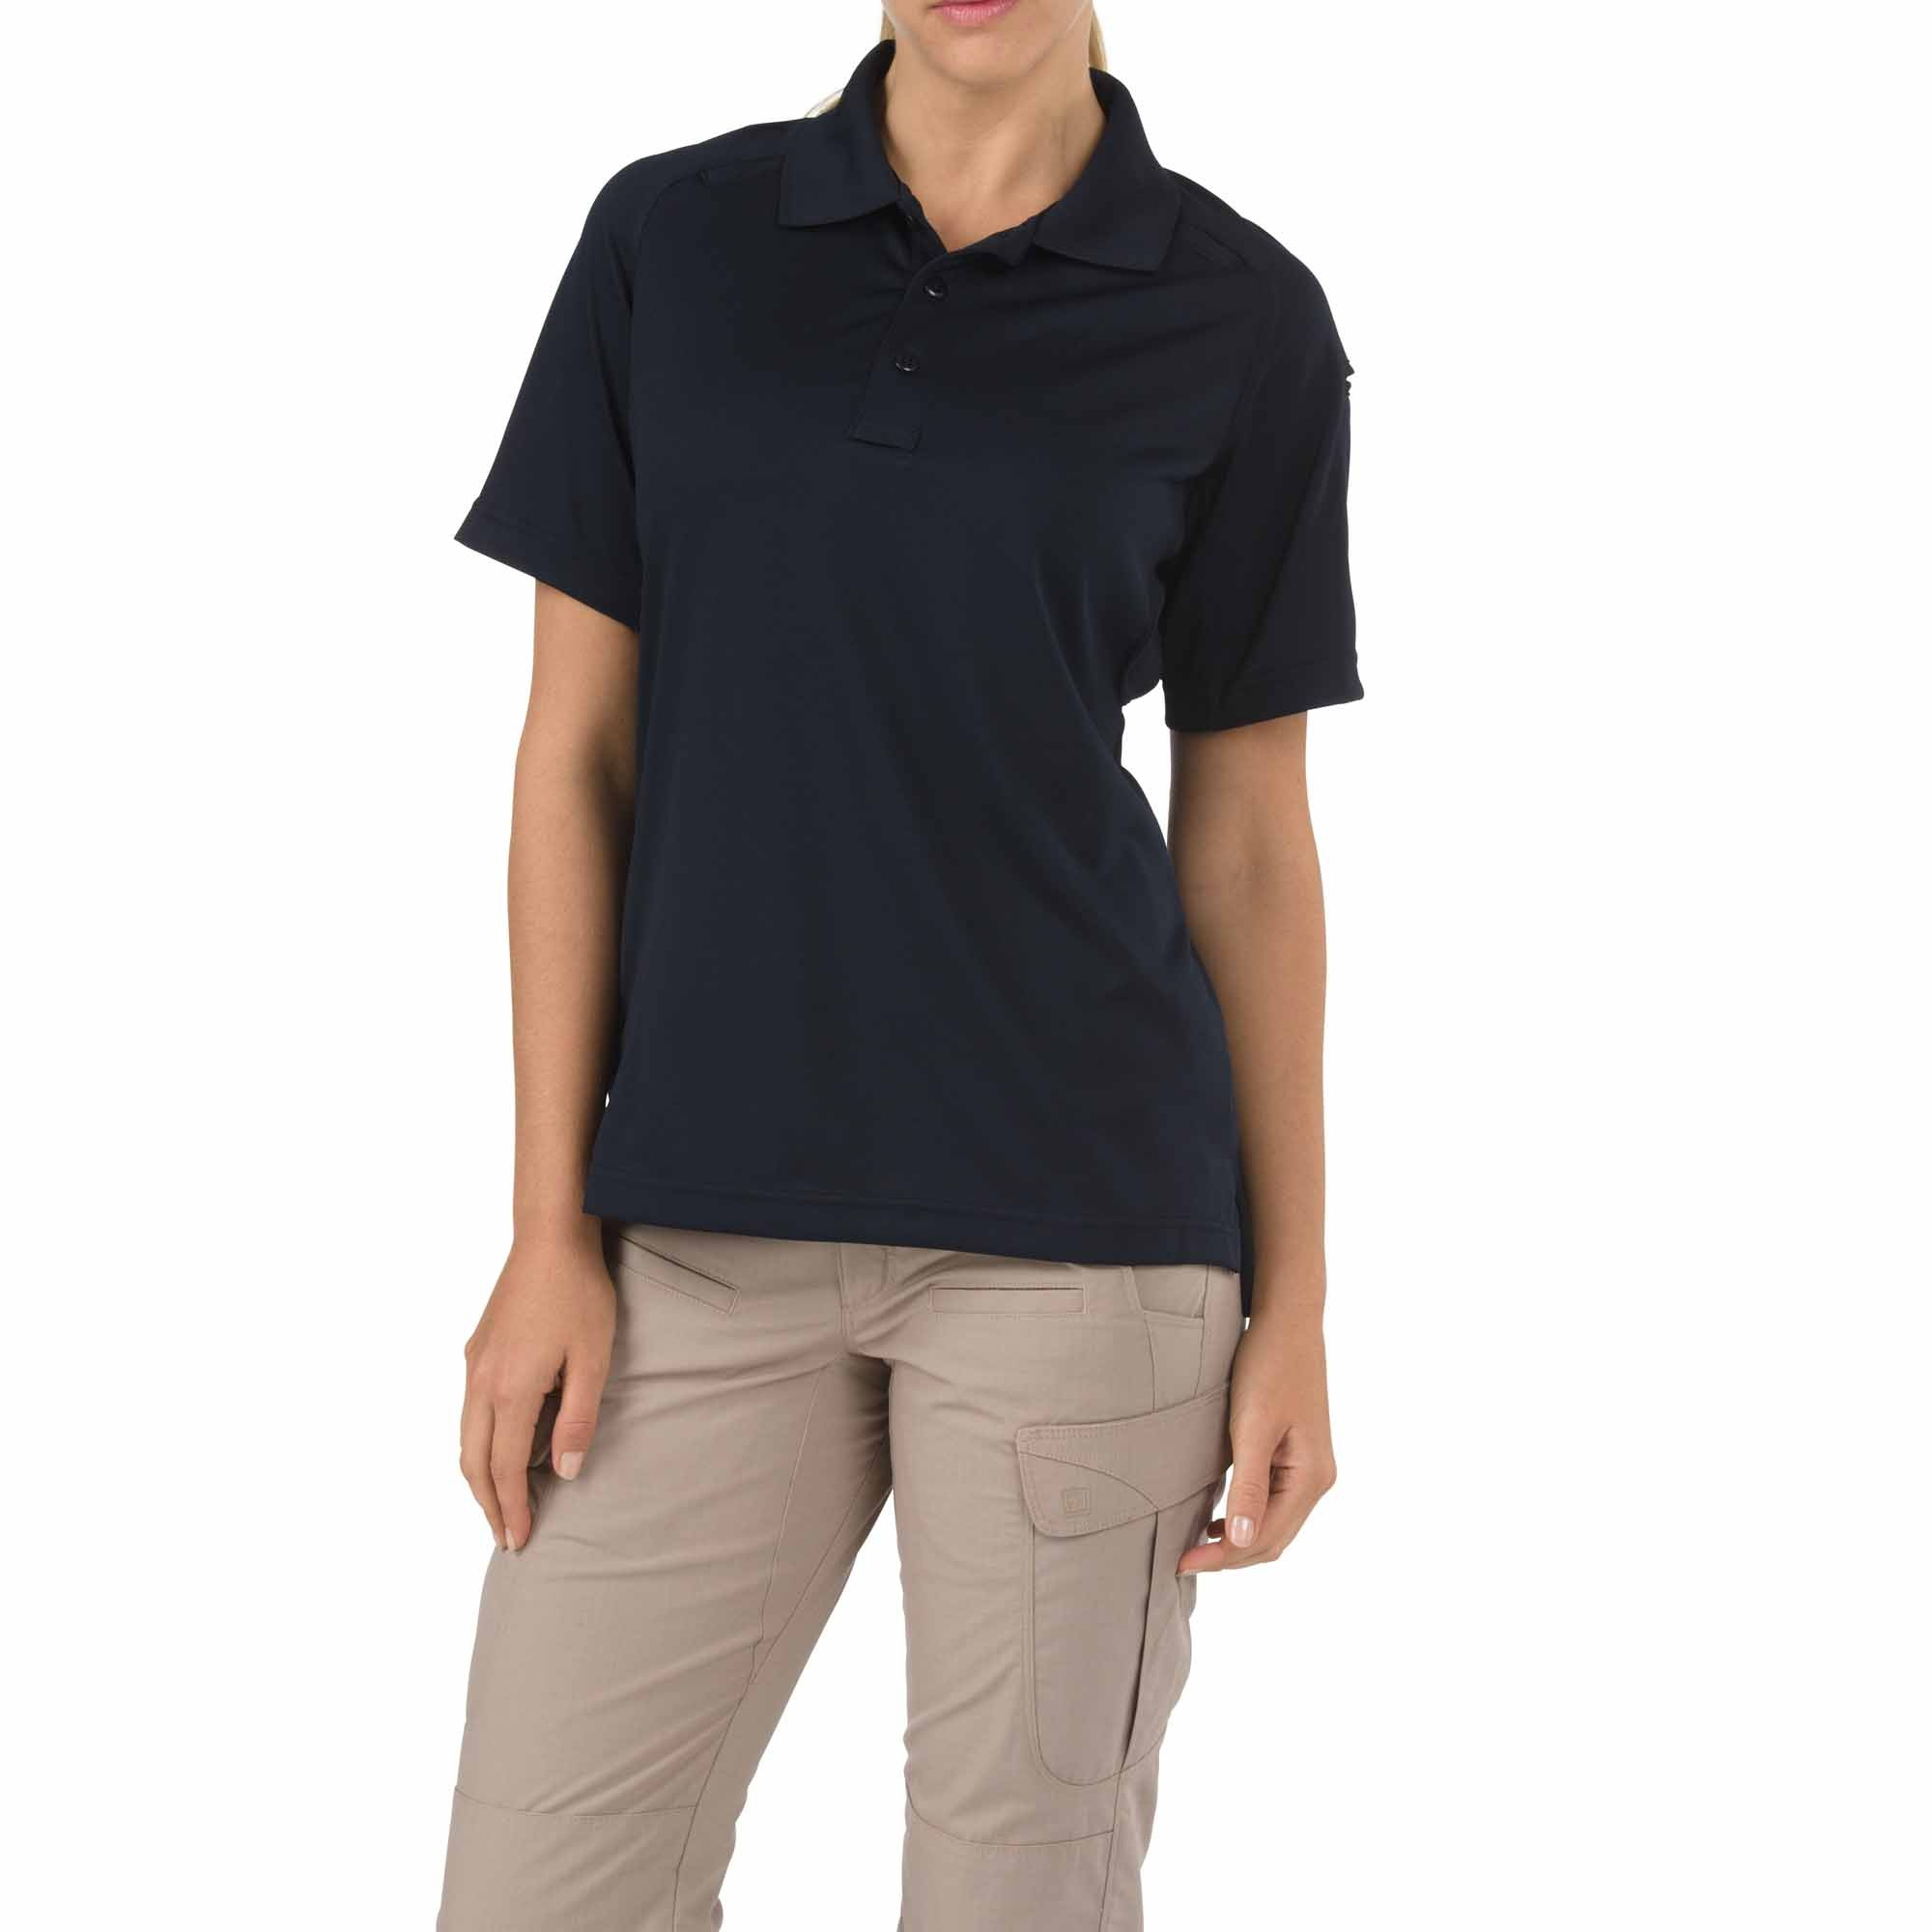 5.11 Womens Performance Polo Shirt 61165